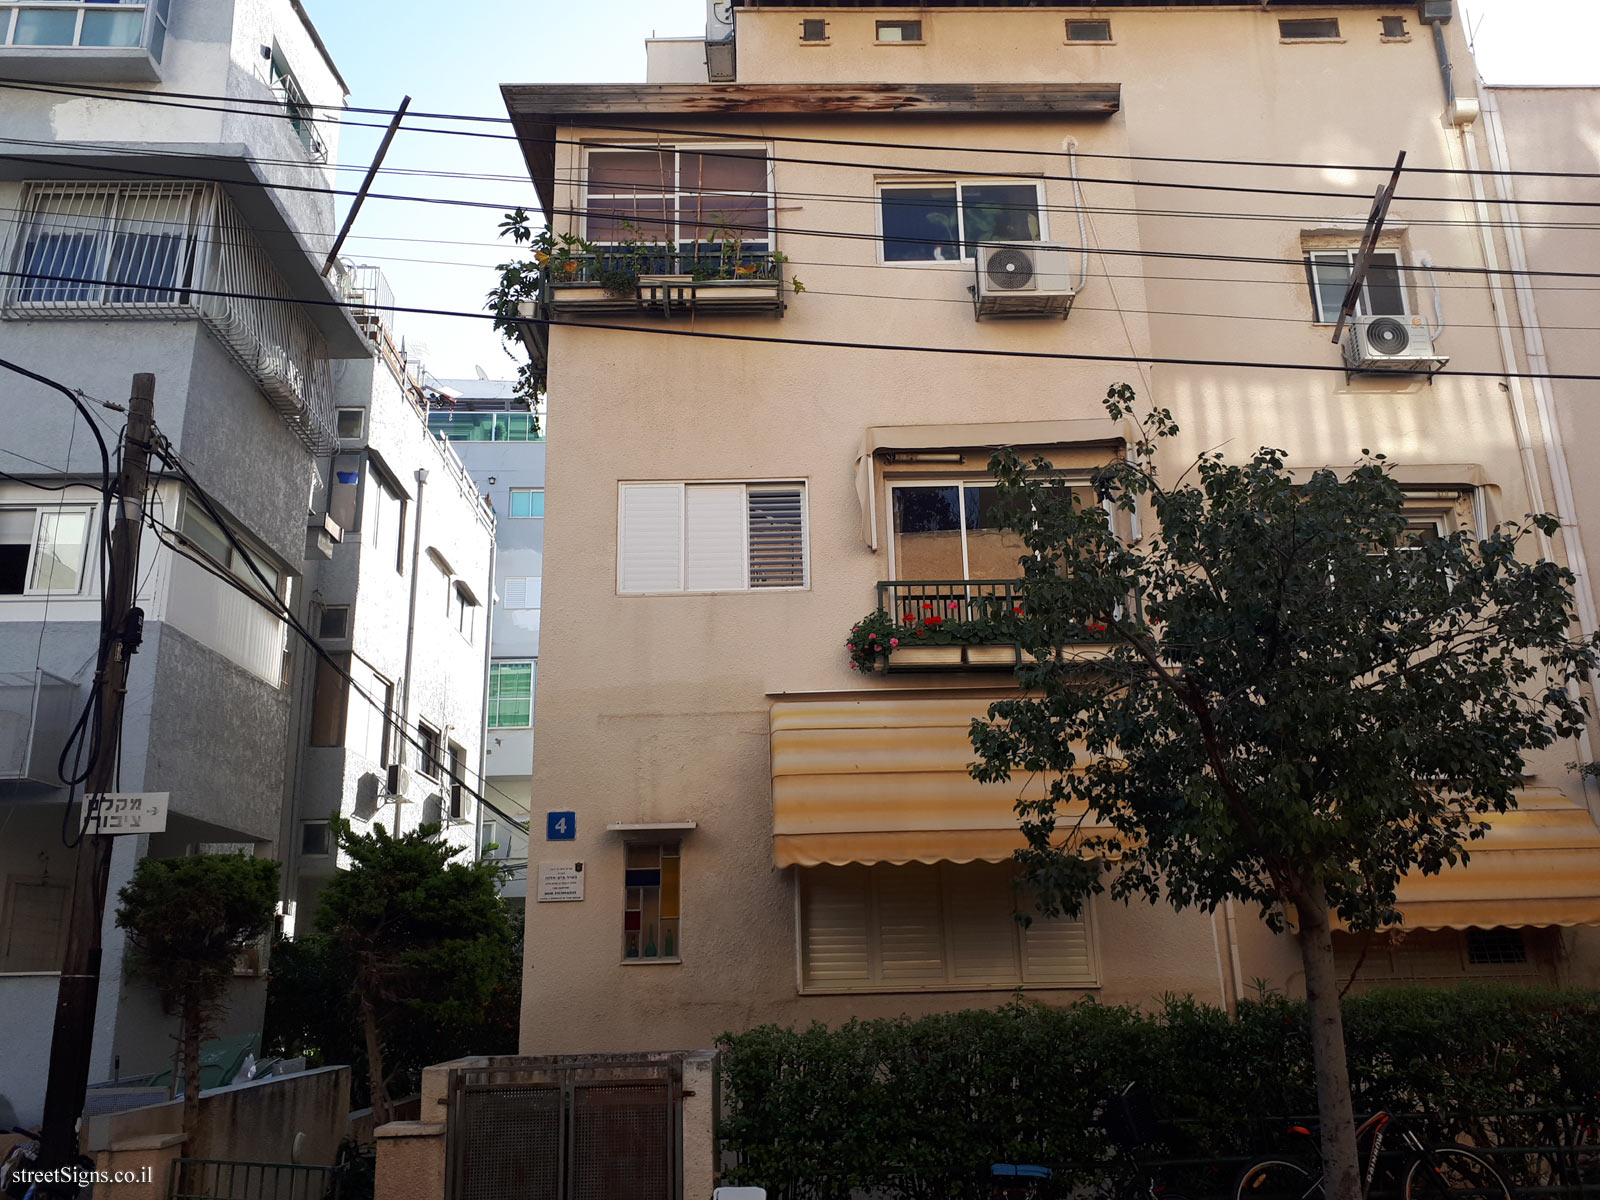 The house of Meir Pichhadze - Emile Zola St 4, Tel Aviv-Yafo, Israel